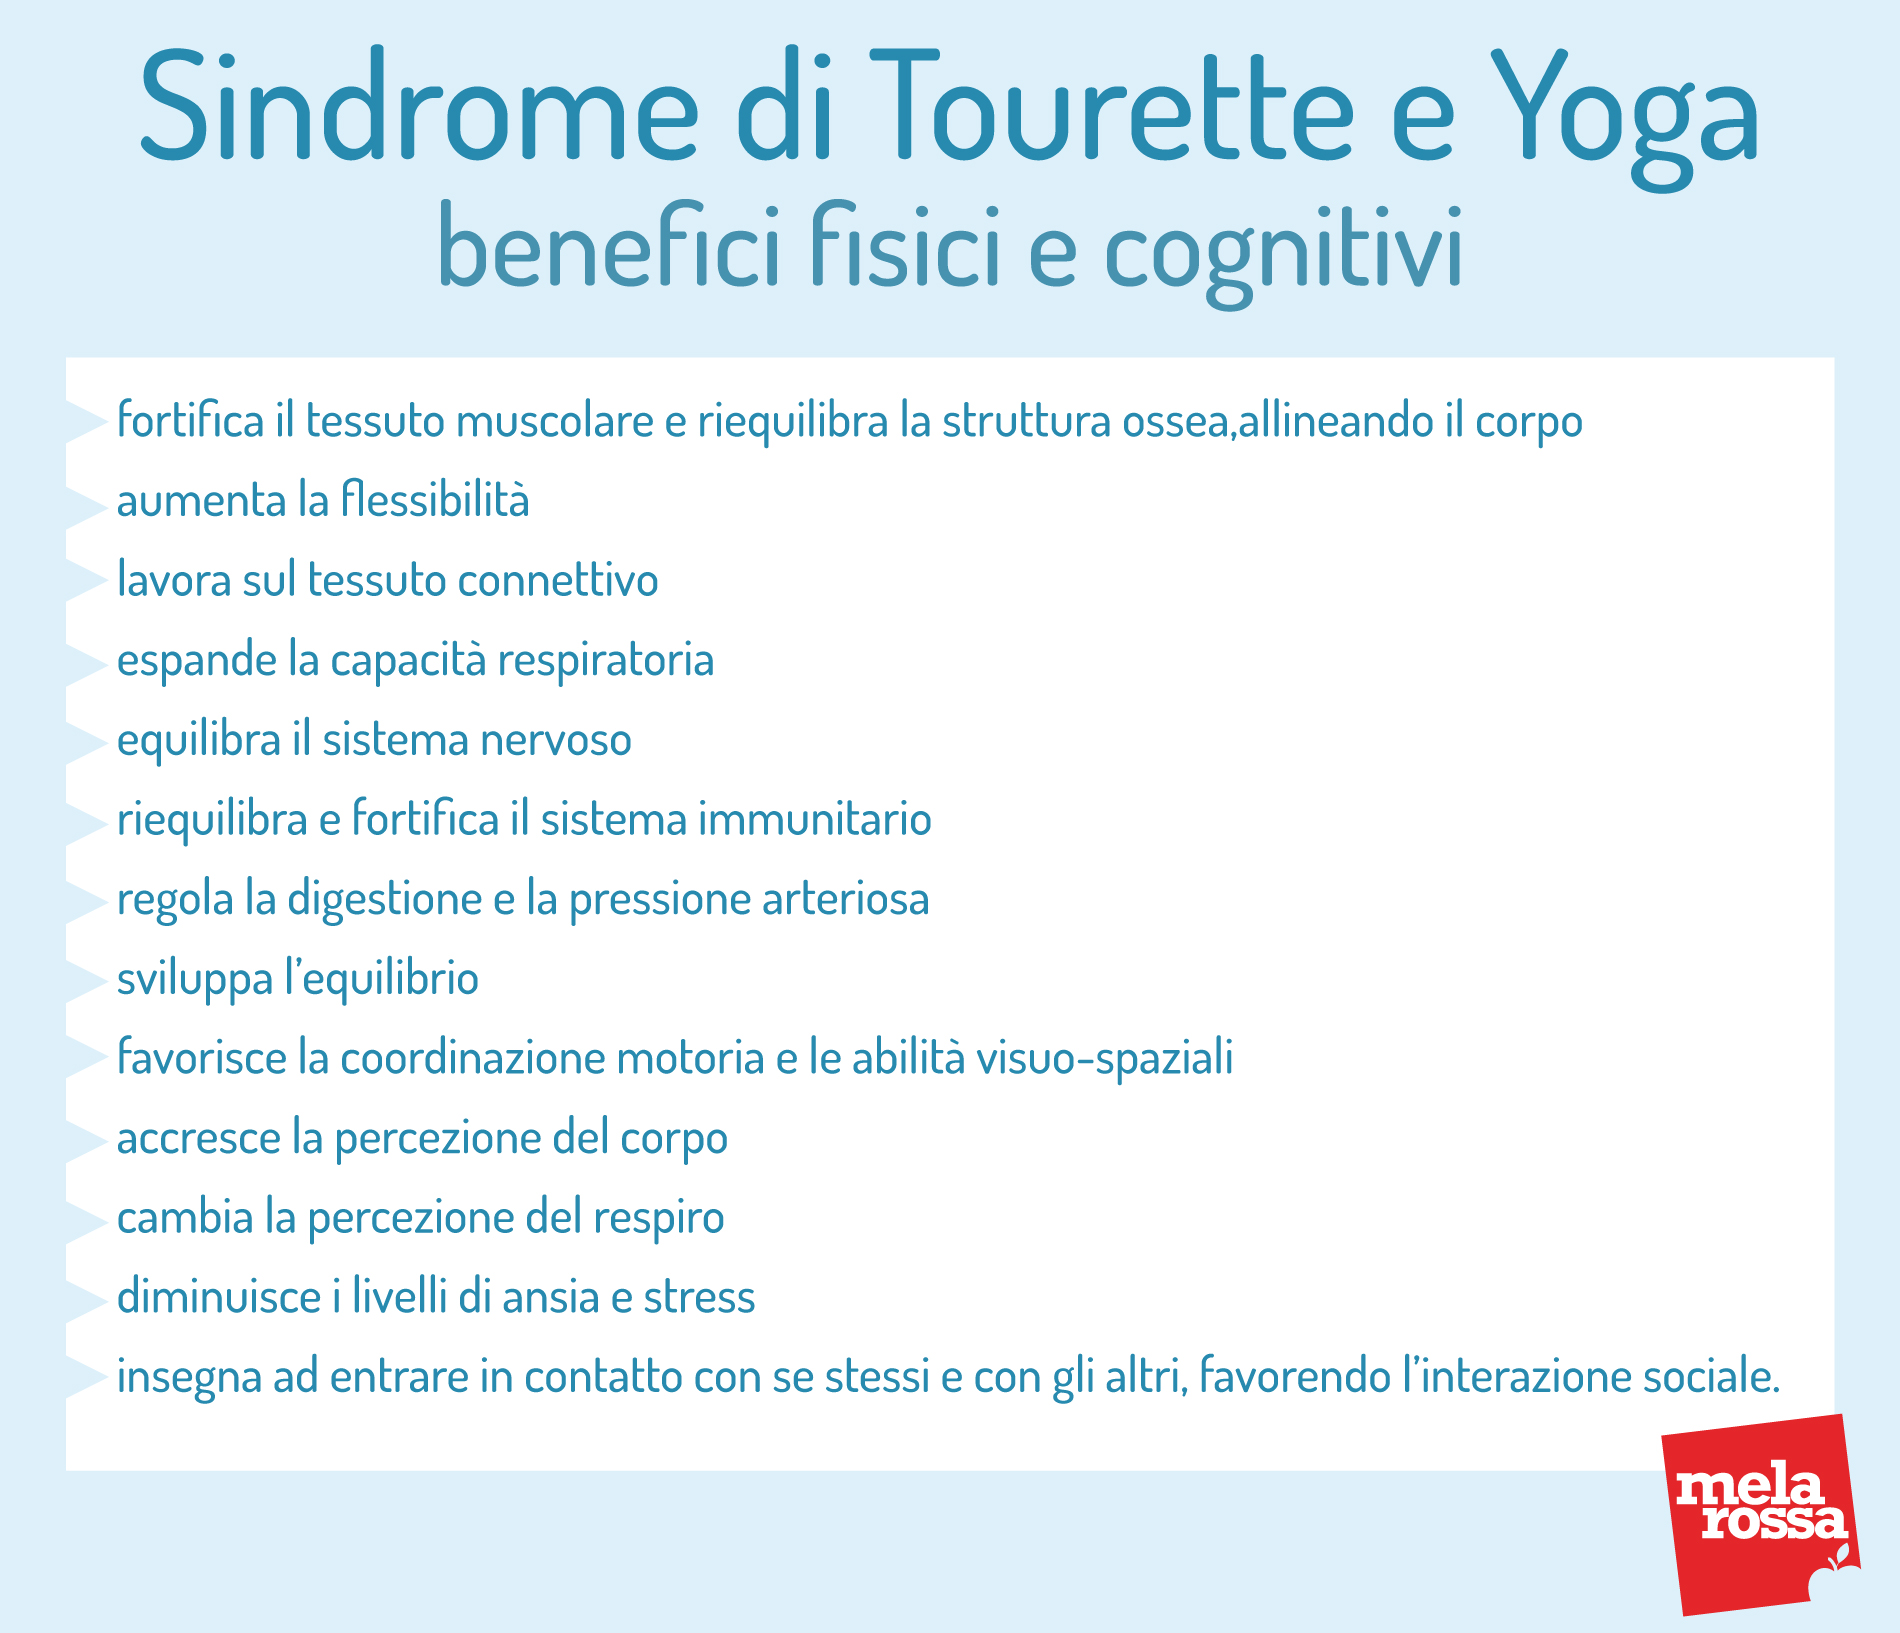 Sindrome di Tourette: benefici dello yoga